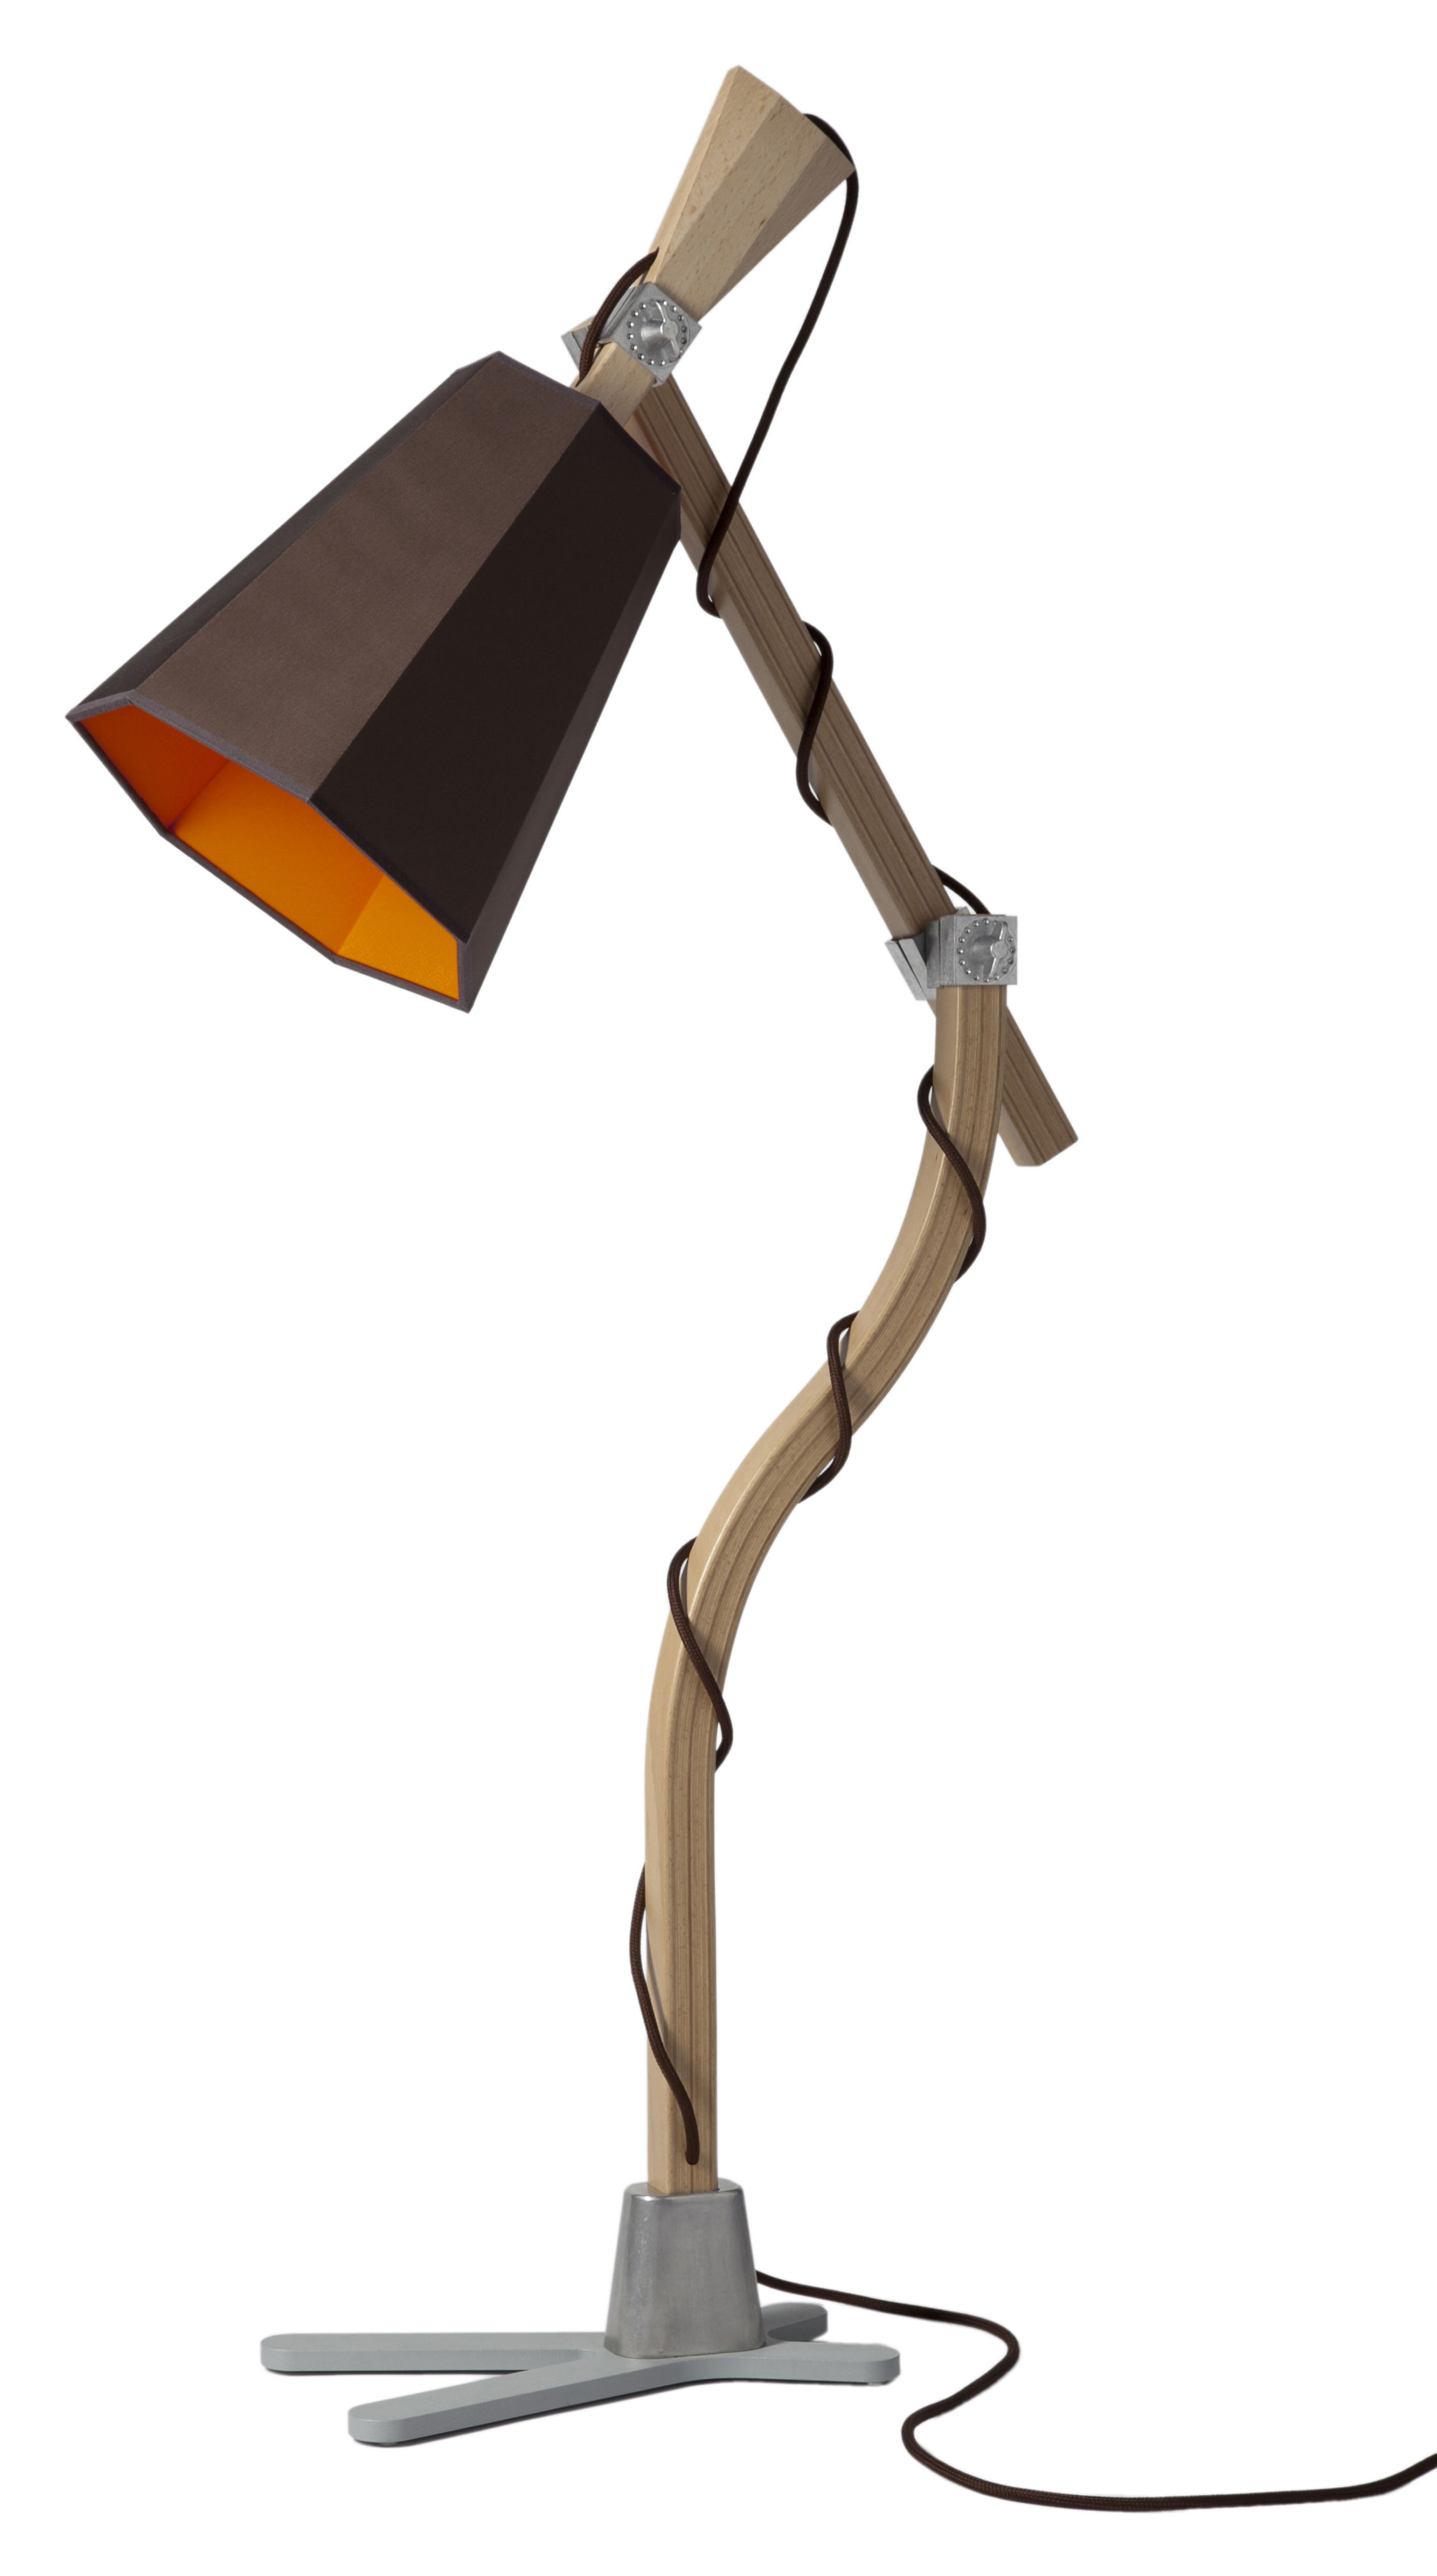 Lighting - LuXiole Table lamp - H 88 cm by Designheure - Brown shade / Orange interior / Brown thread - Beechwood, Cotton, Lacquered steel